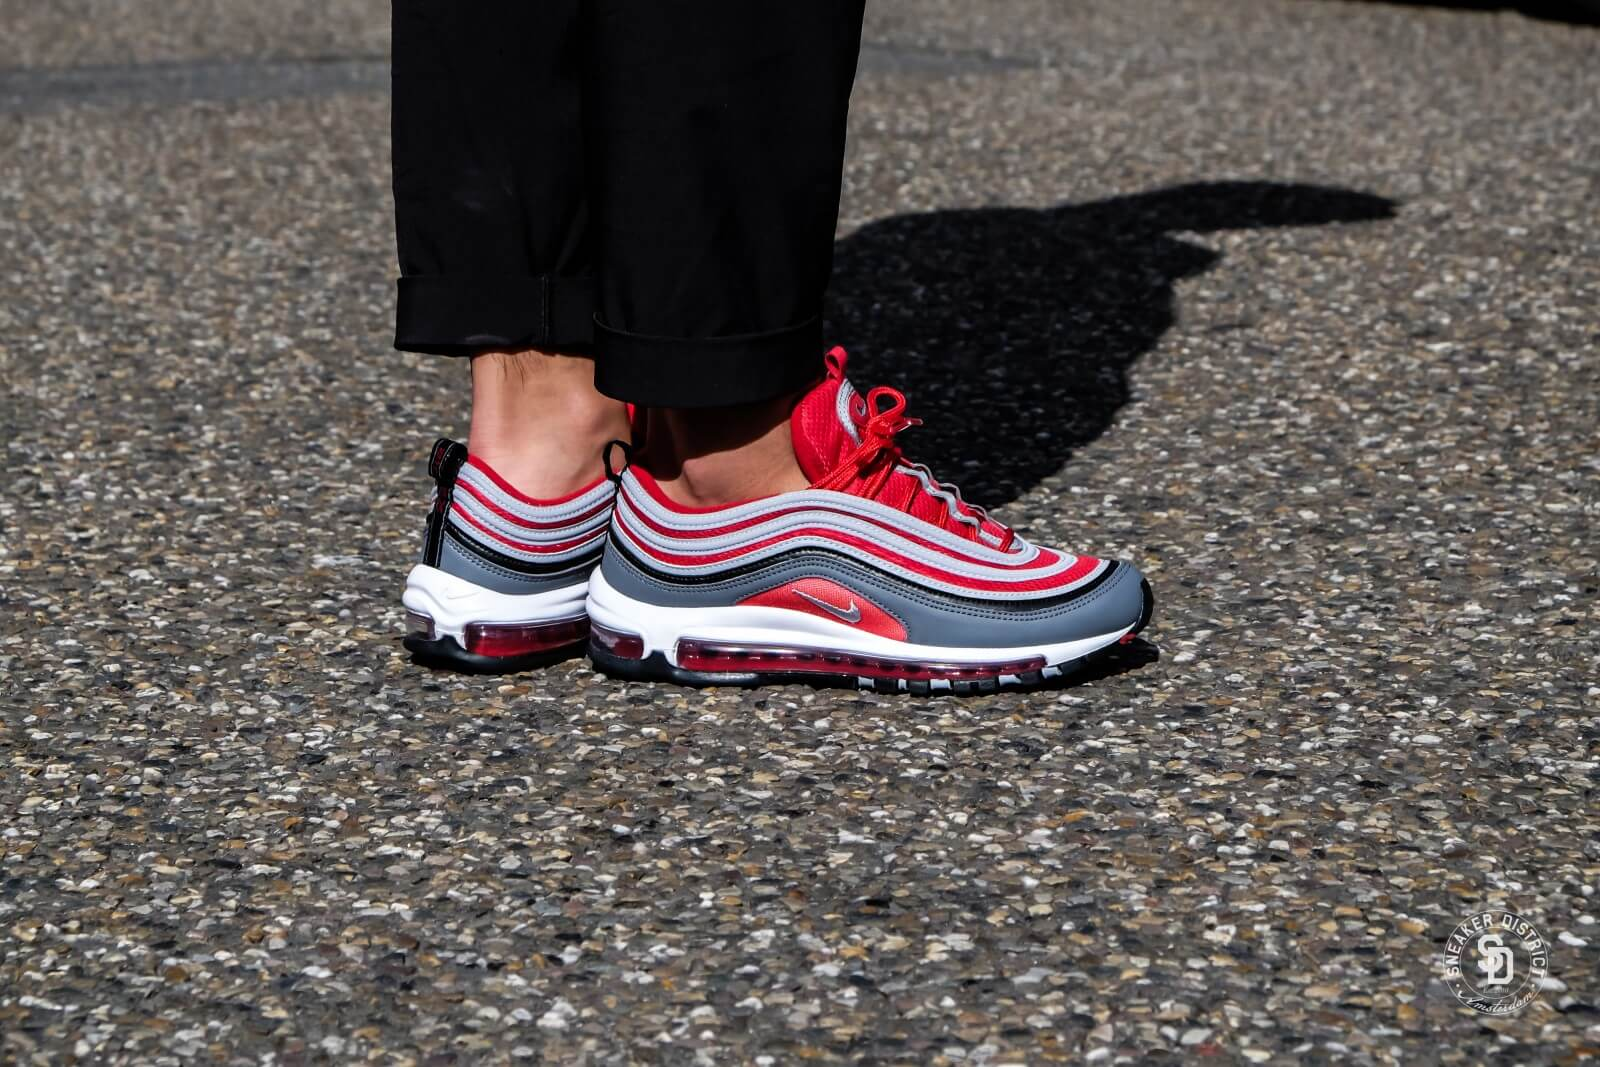 Nike Air Max 97 Dark Grey Wolf Grey Gym Red 921826 007